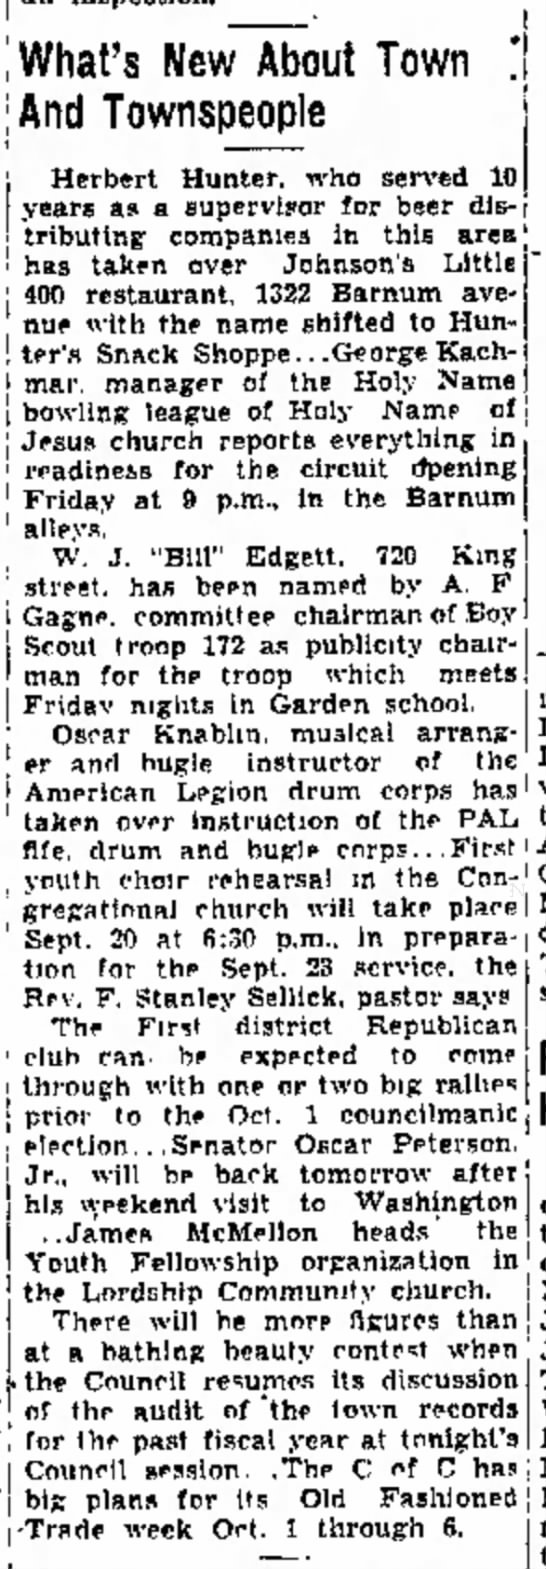 The Bridgeport Telegram (Bridgeport, Connecticut)